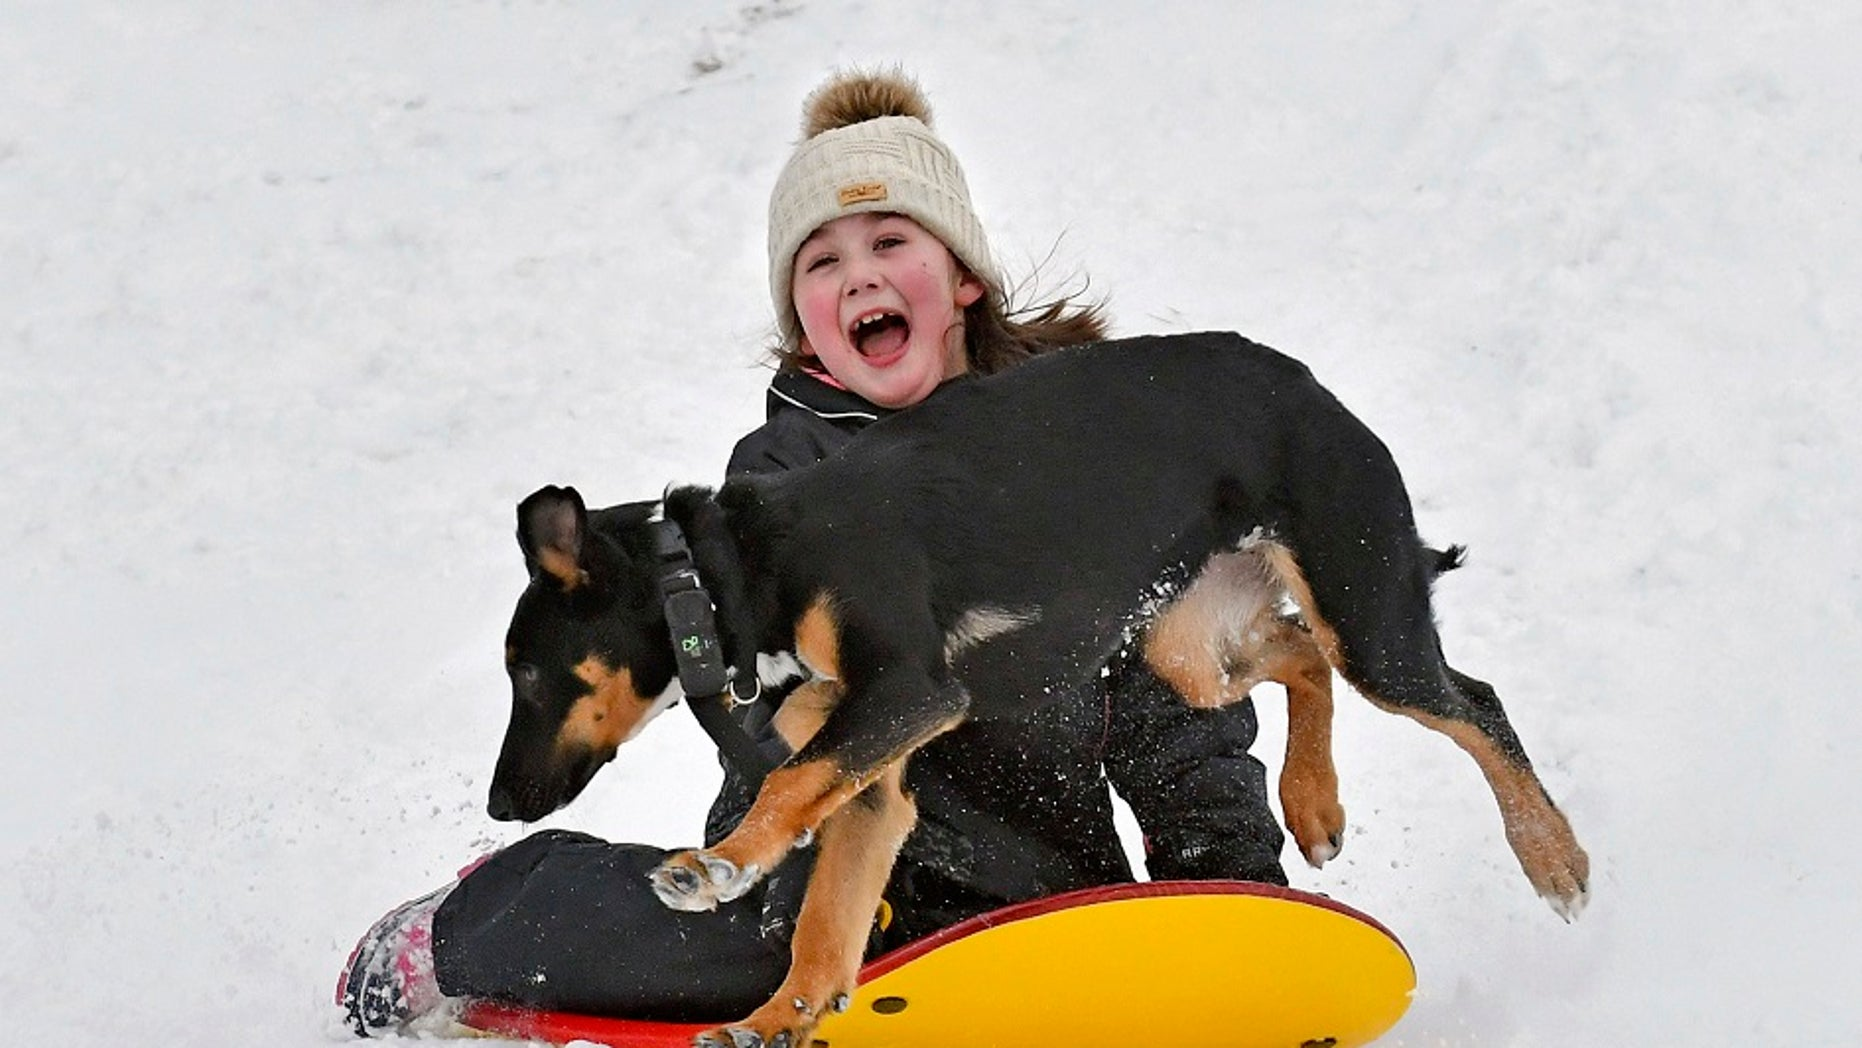 Kylie Silvia, 7, of Sedro-Woolley, Wash., slides down a hill Feb. 9, 2019, at the Northern State Recreation Area while being chased by Atlas, one of the two family dogs. (Associated Press)